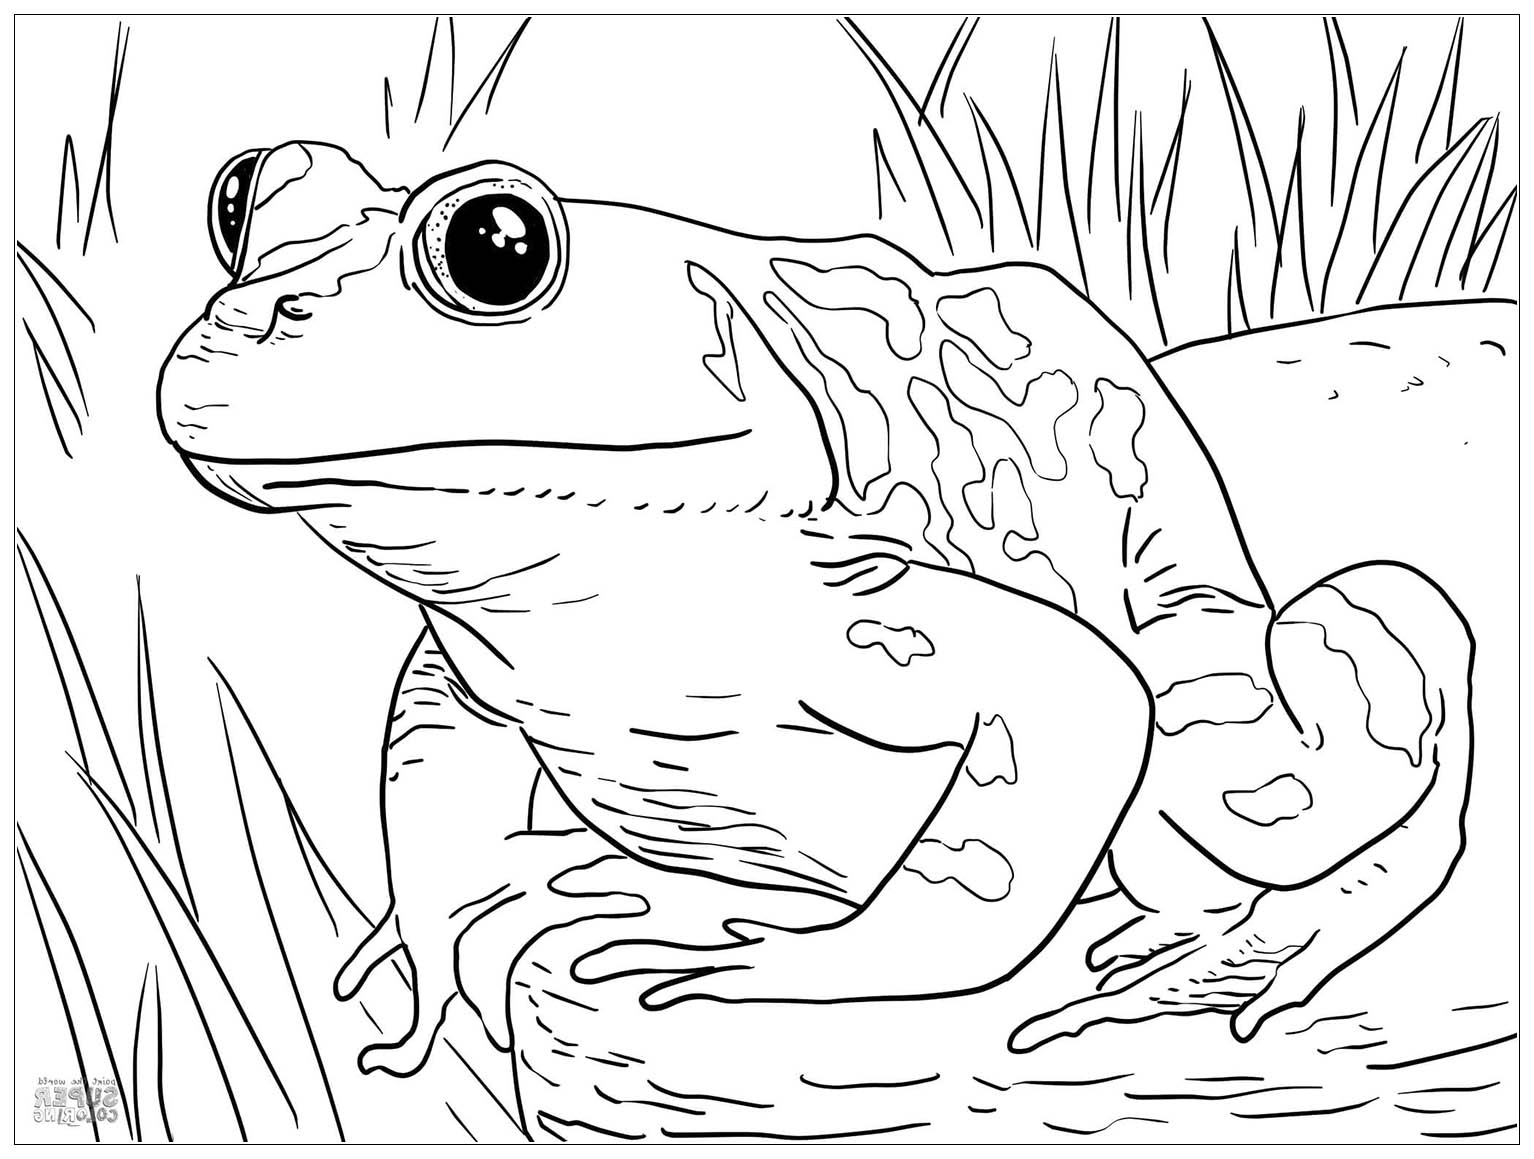 Frogs to download for free - Frogs Kids Coloring Pages